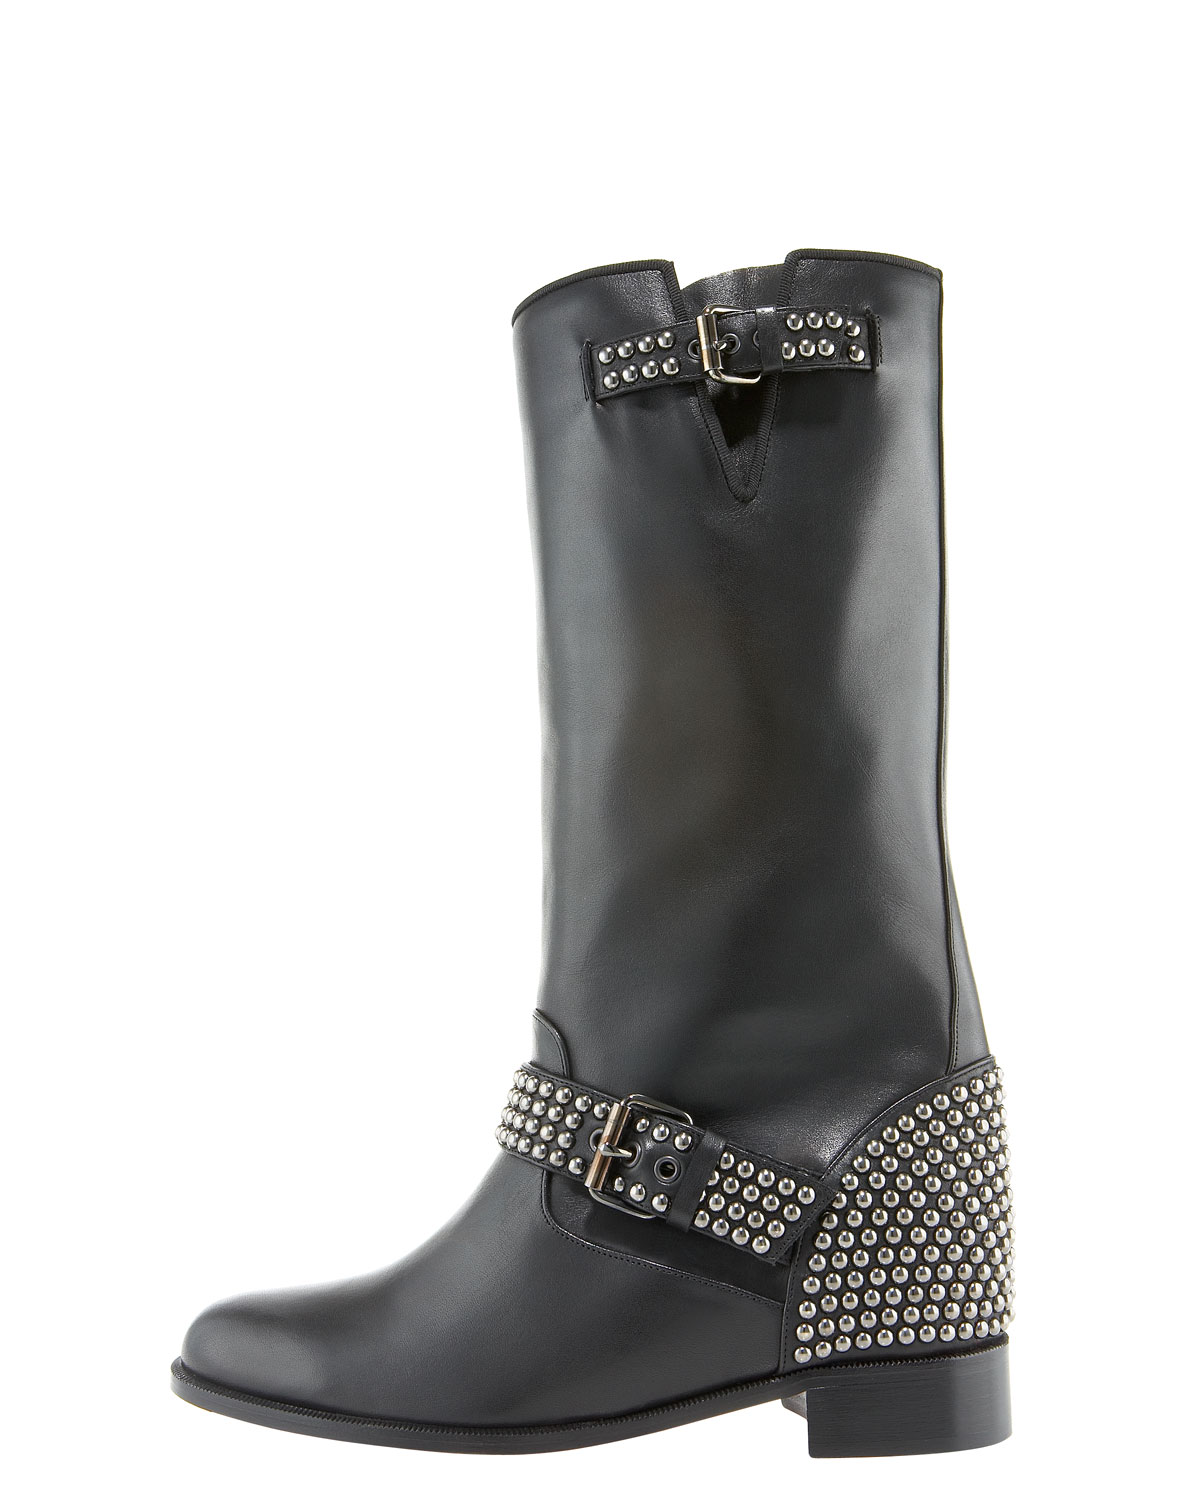 71779db377e0 Lyst - Christian Louboutin Studded Motorcycle Boot in Black